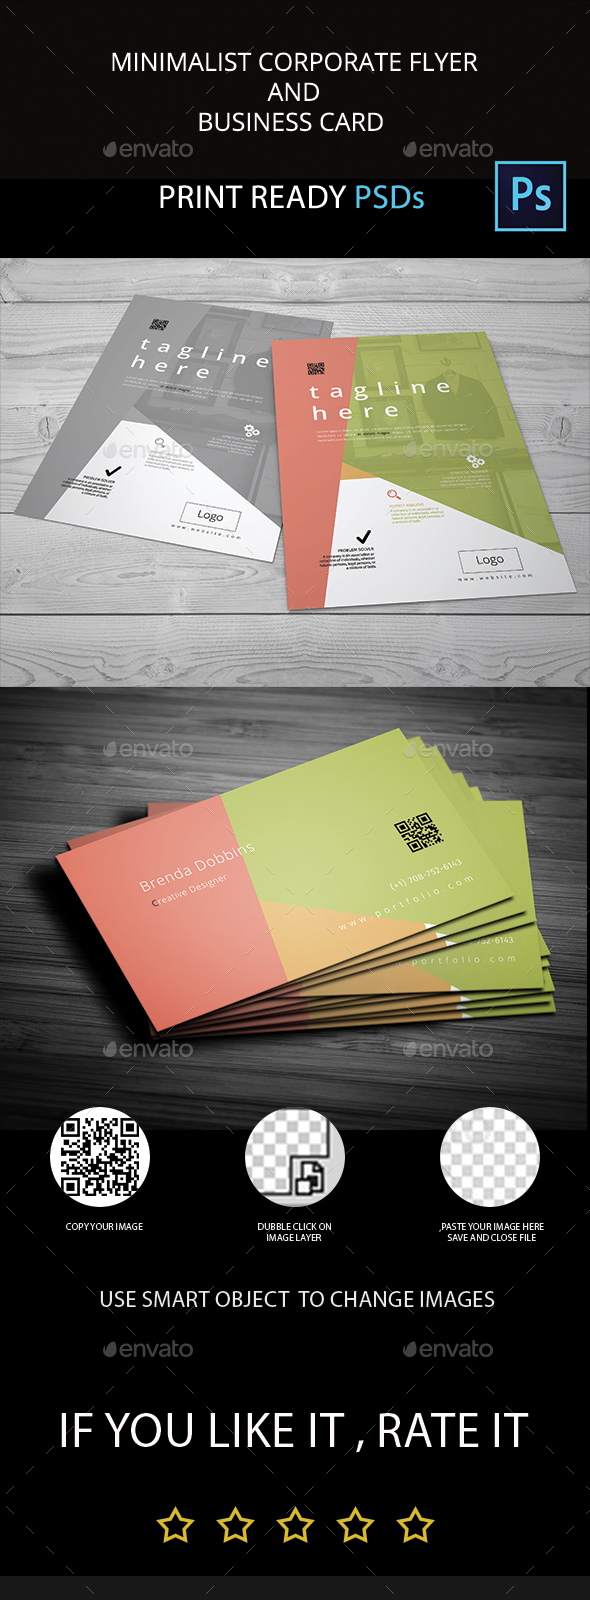 Minimalist Flyer and Business Card - Miscellaneous Print Templates